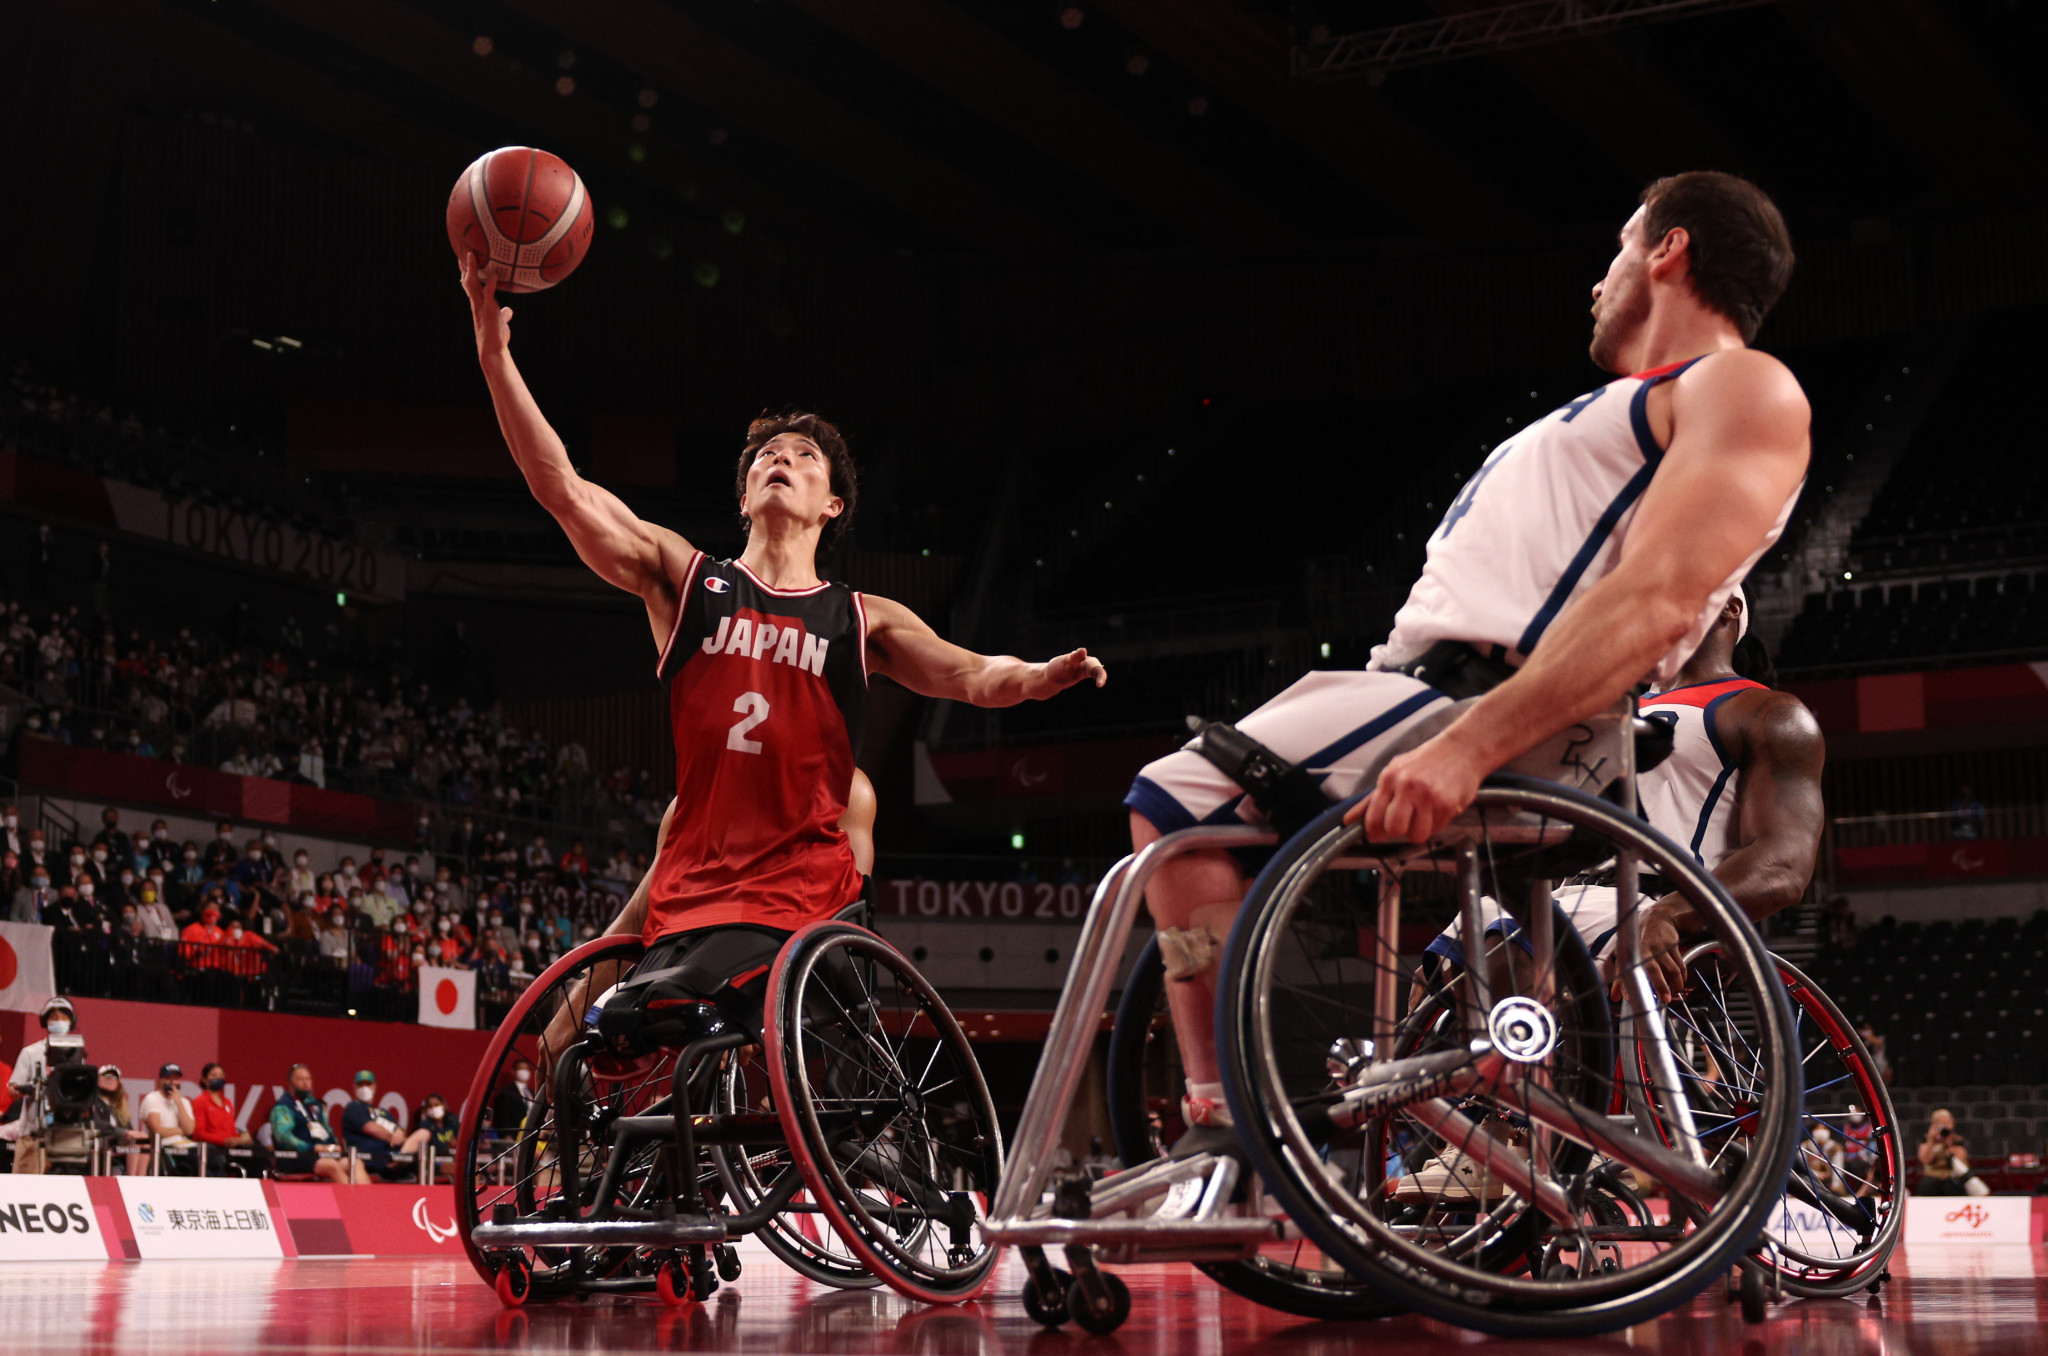 Dates confirmed for IWBF Men's Under-23 World Championship in Chiba